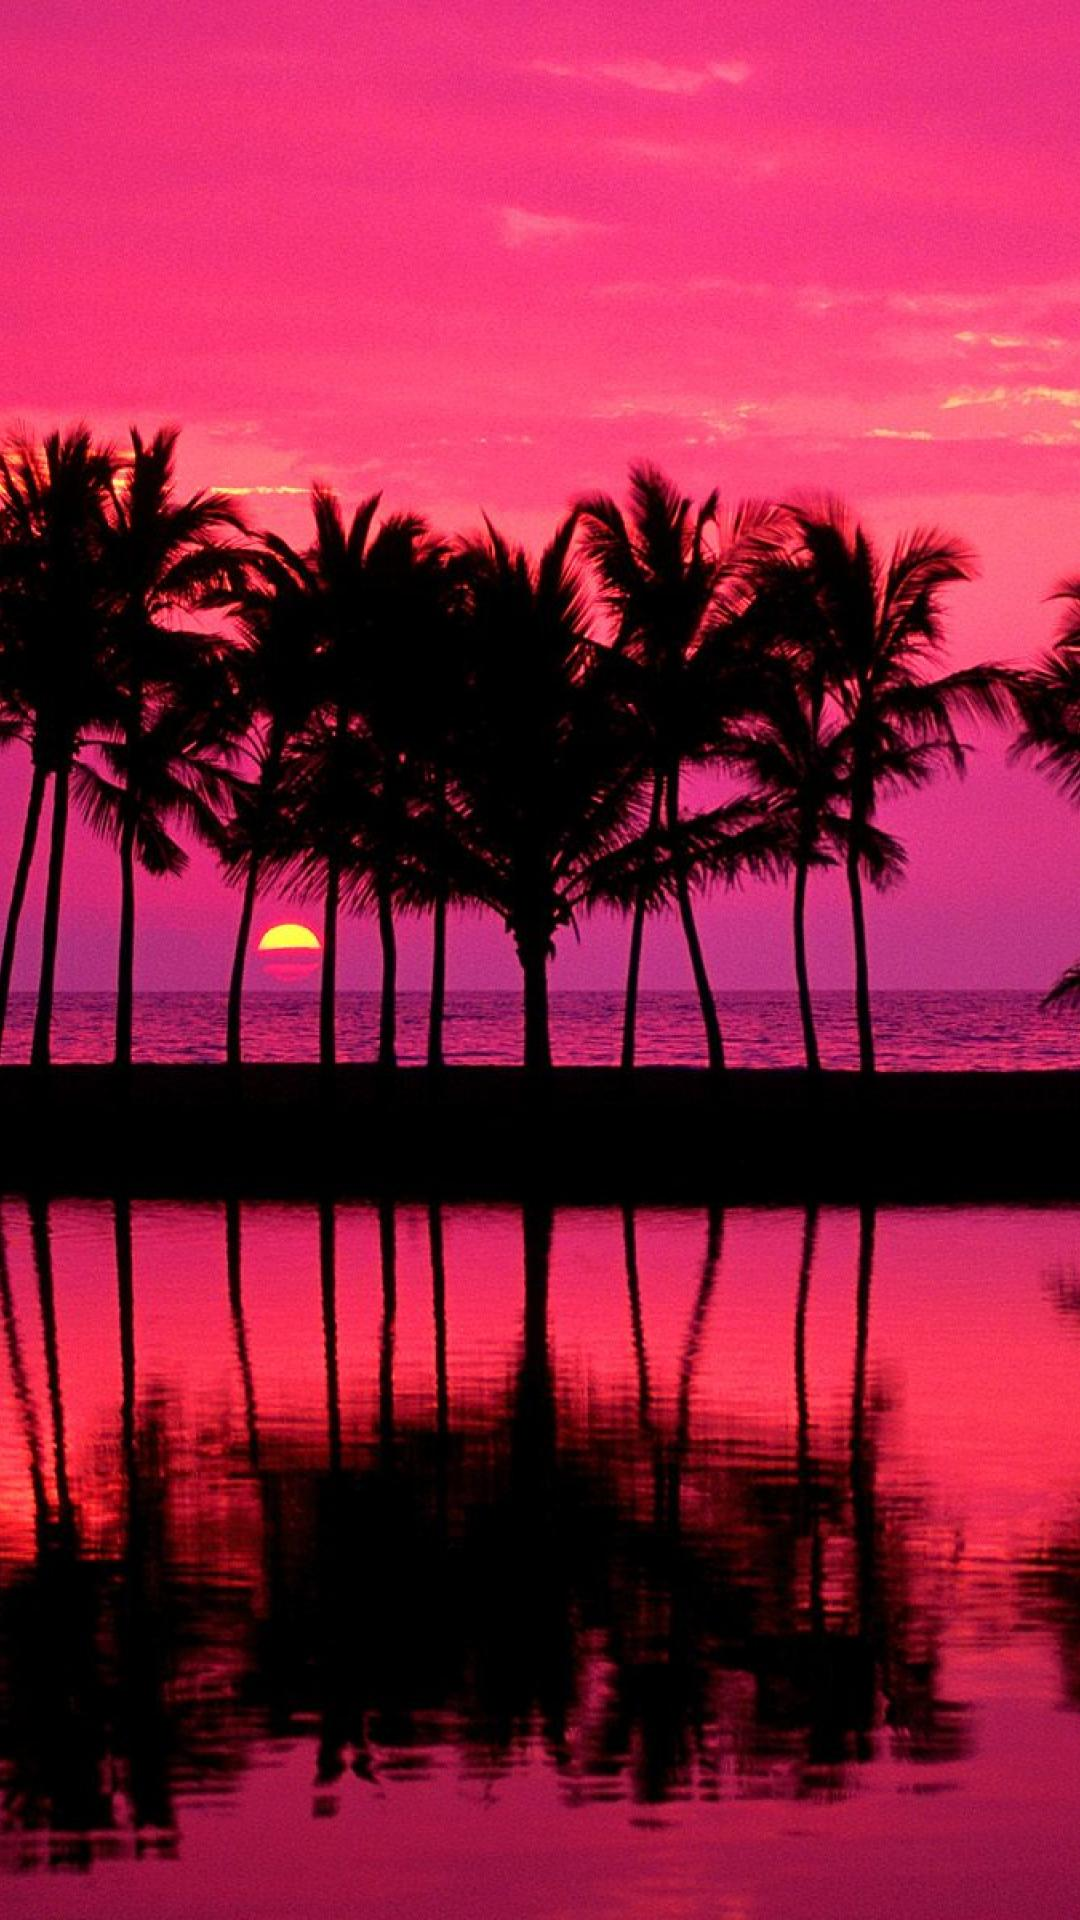 Wallpaper download girly - Tumblr Palm Trees Girly Pink Iphone 6 Plus Wallpaper